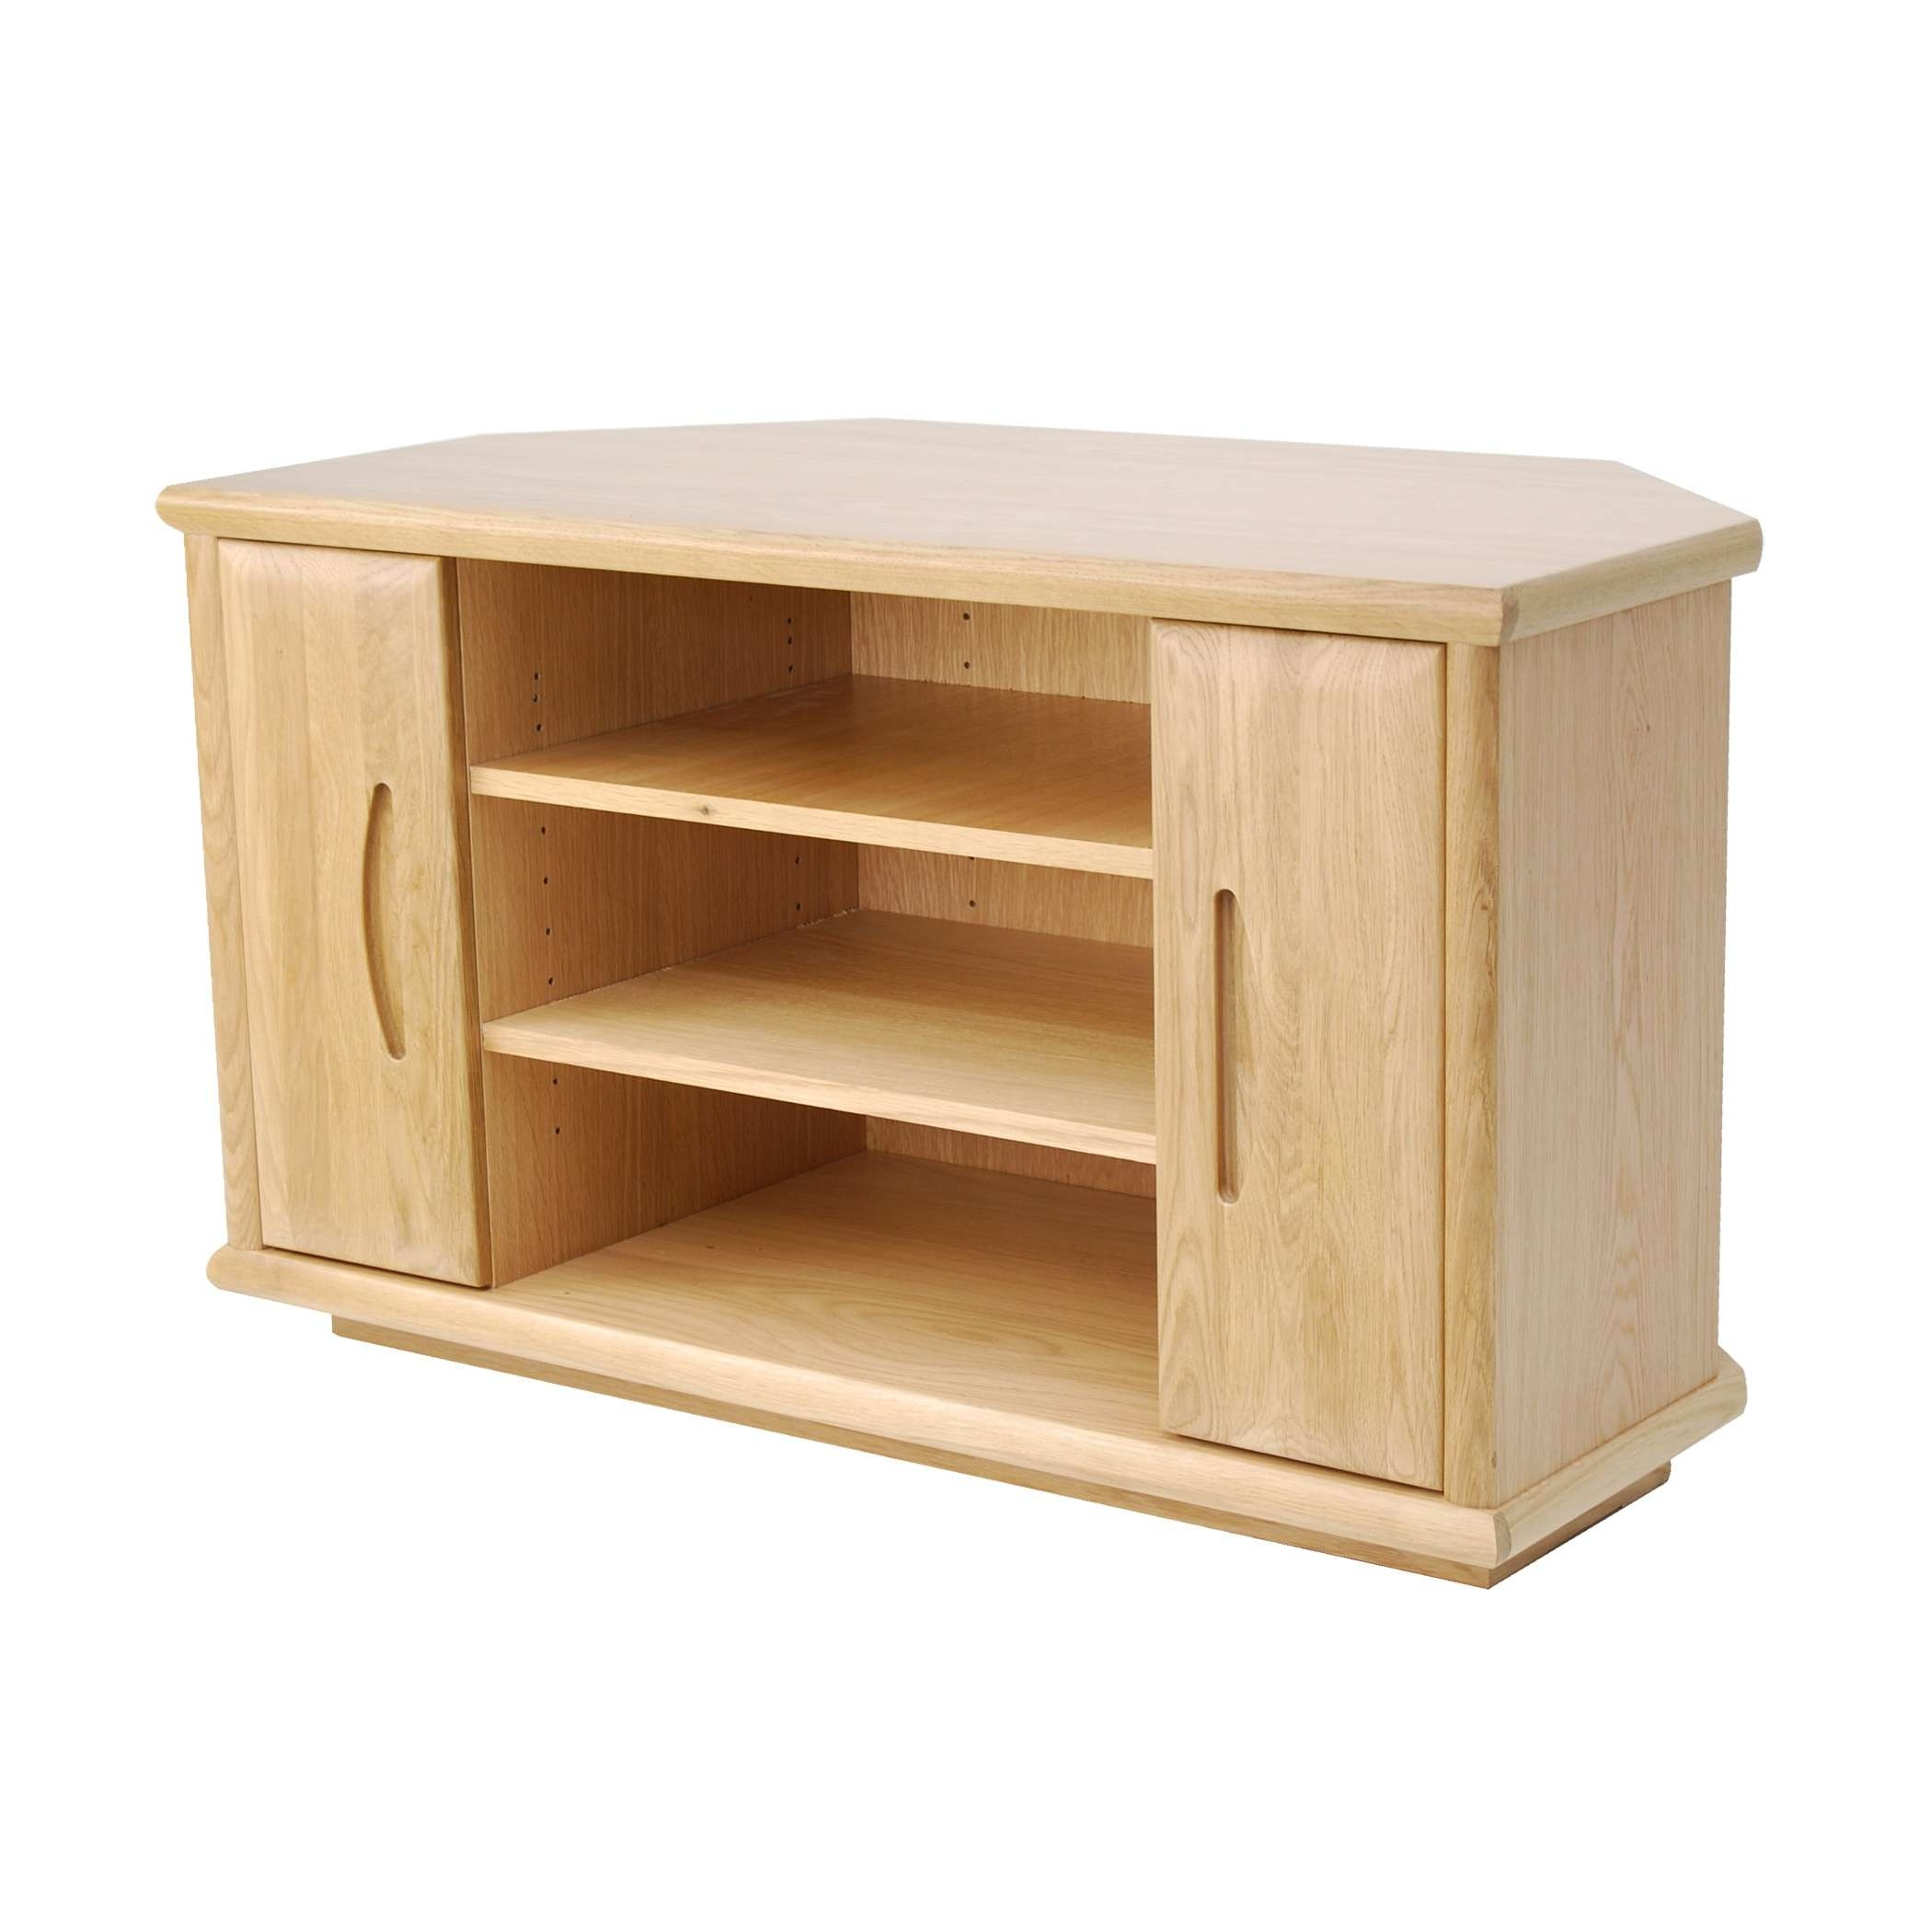 Oak Corner Tv Stand | Gola Furniture Uk Pertaining To Corner Oak Tv Stands (Gallery 6 of 15)